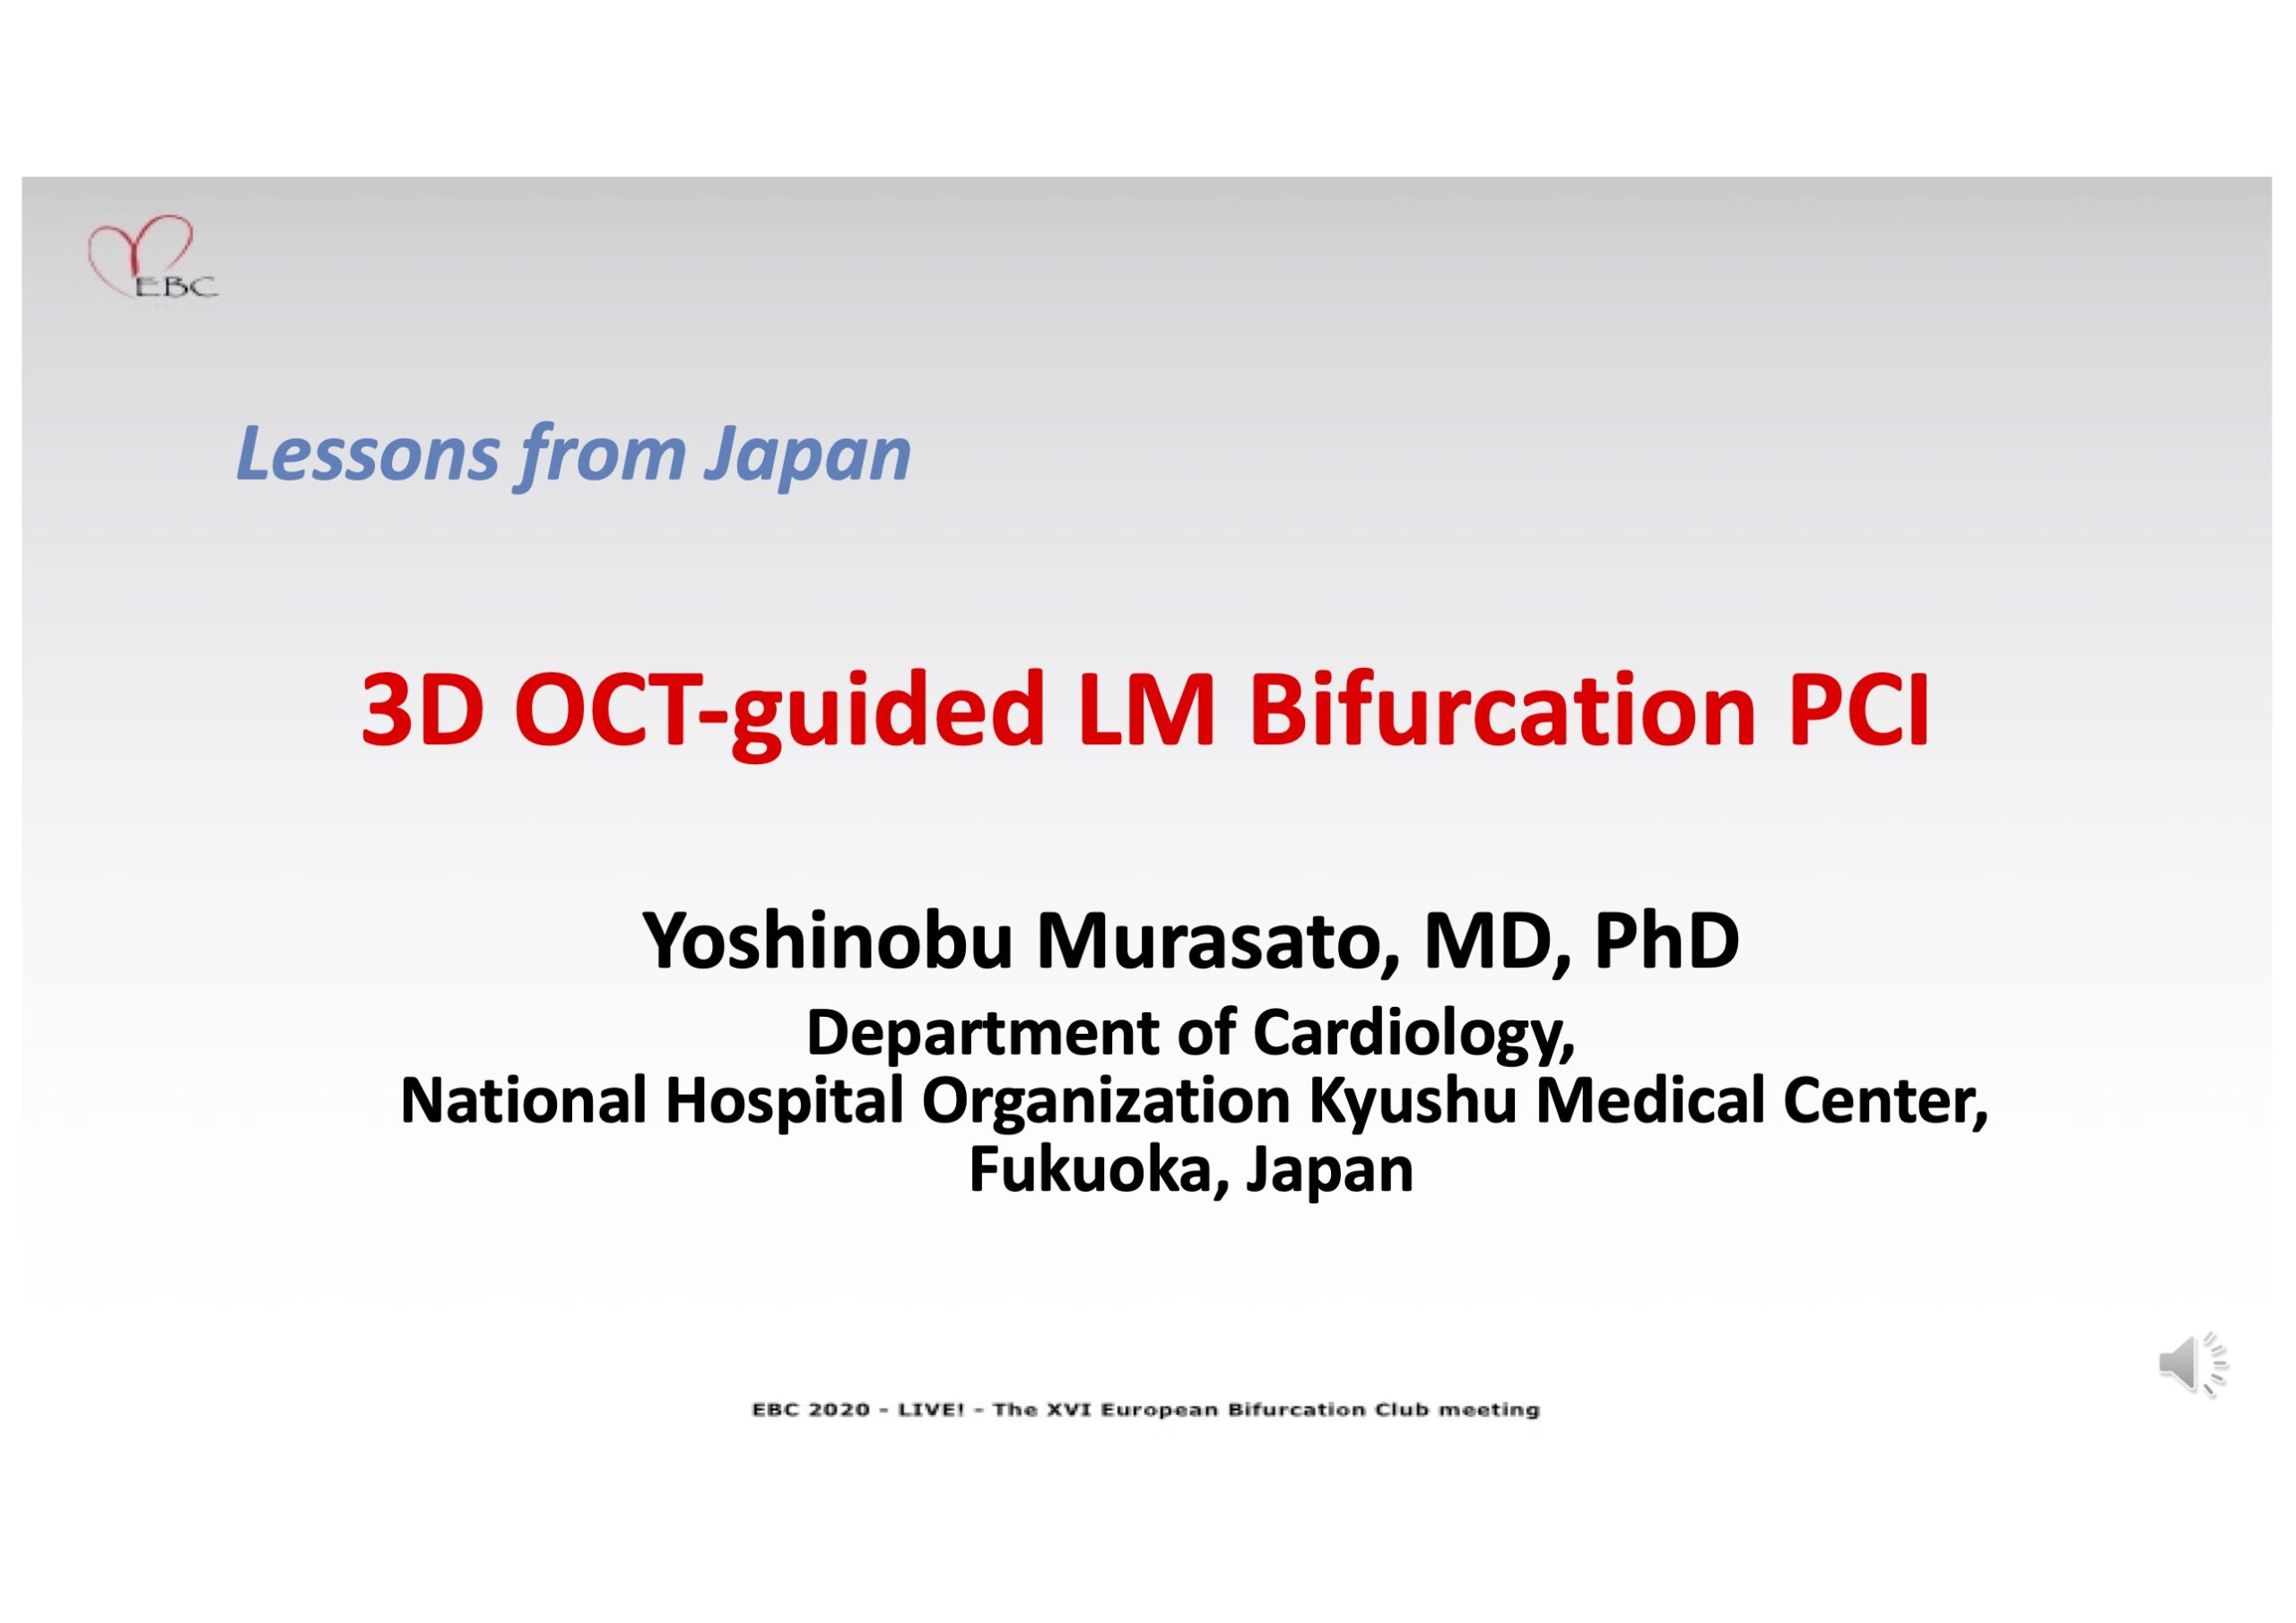 3D OCT-guided LM bifurcation PCI: Impact of 3-D imaging on optimal wiring and subsequent procedure – Dr Yoshi Murasato